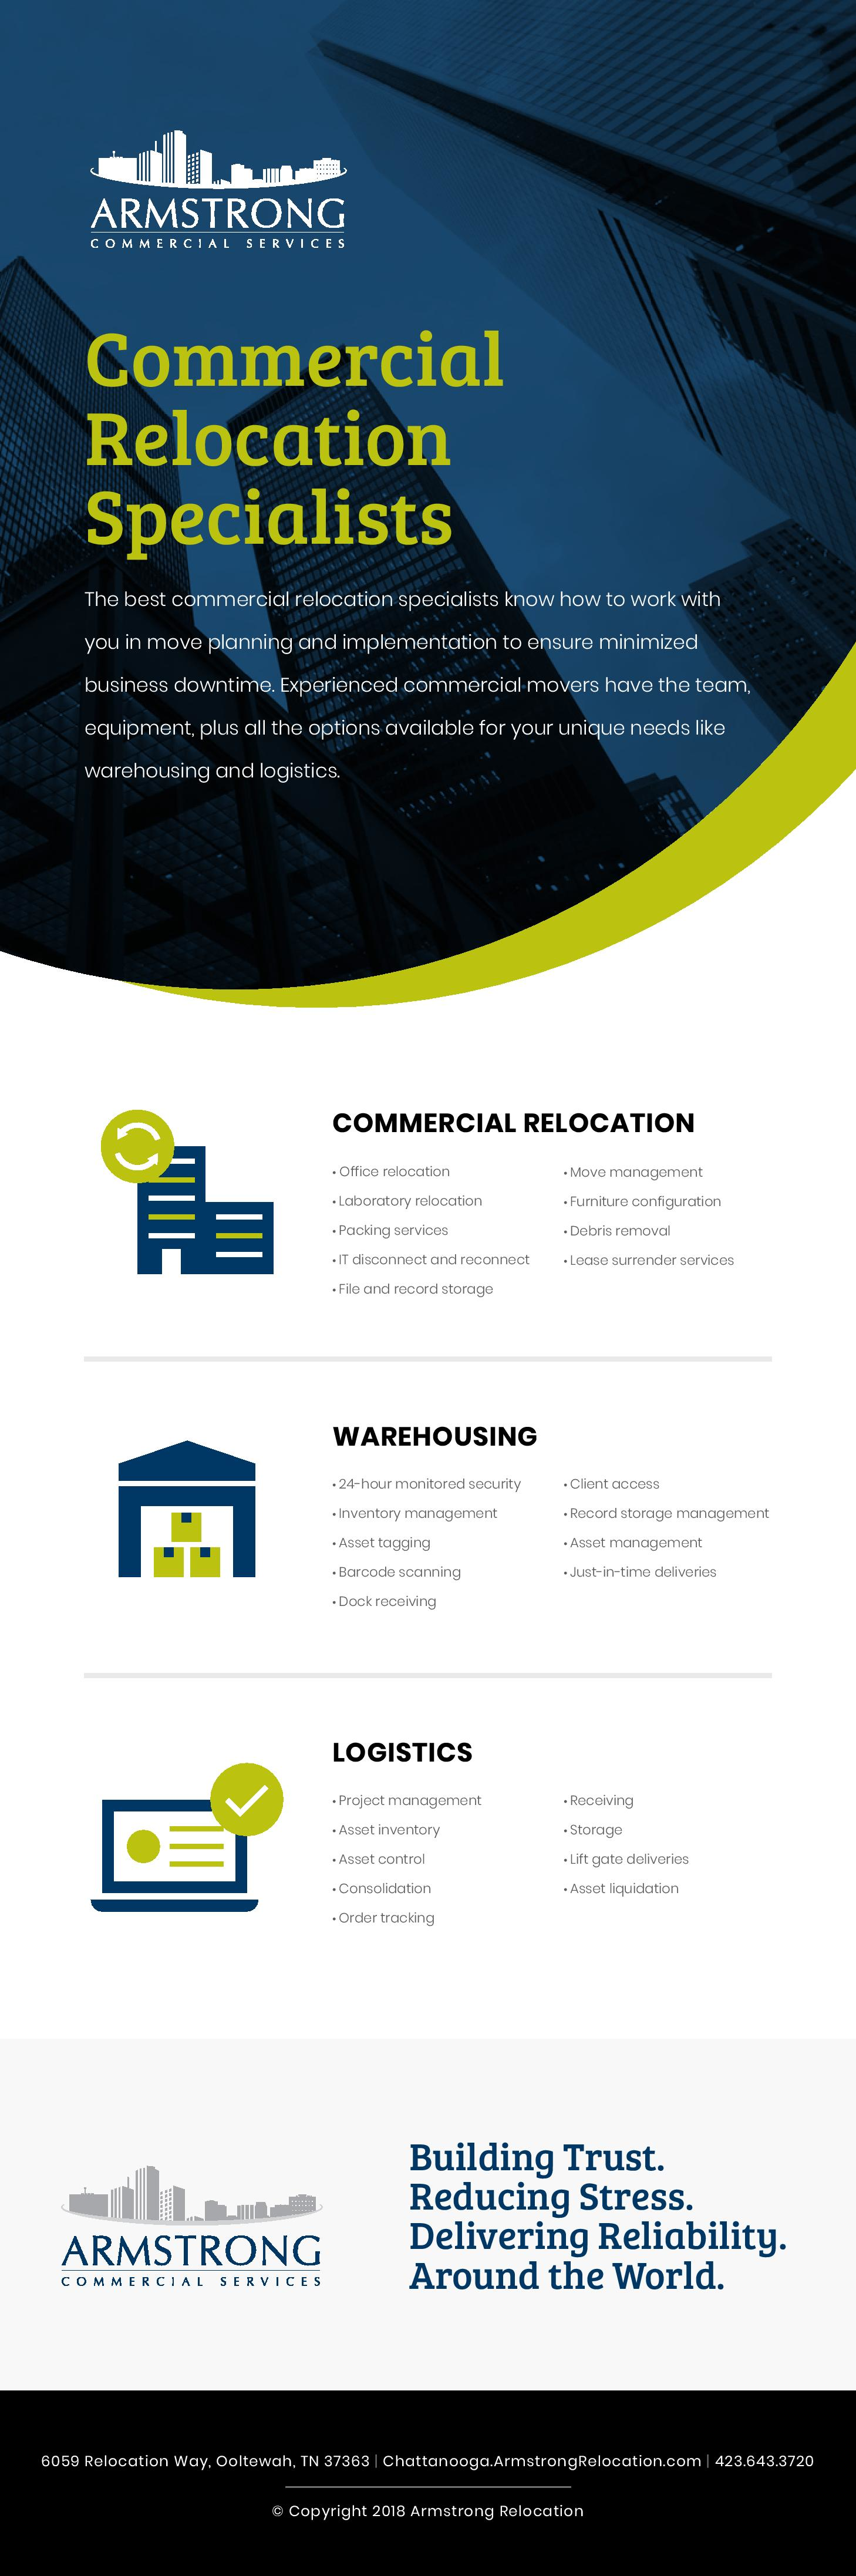 Armstrong Commercial Services Chattanooga Commercial Relocation